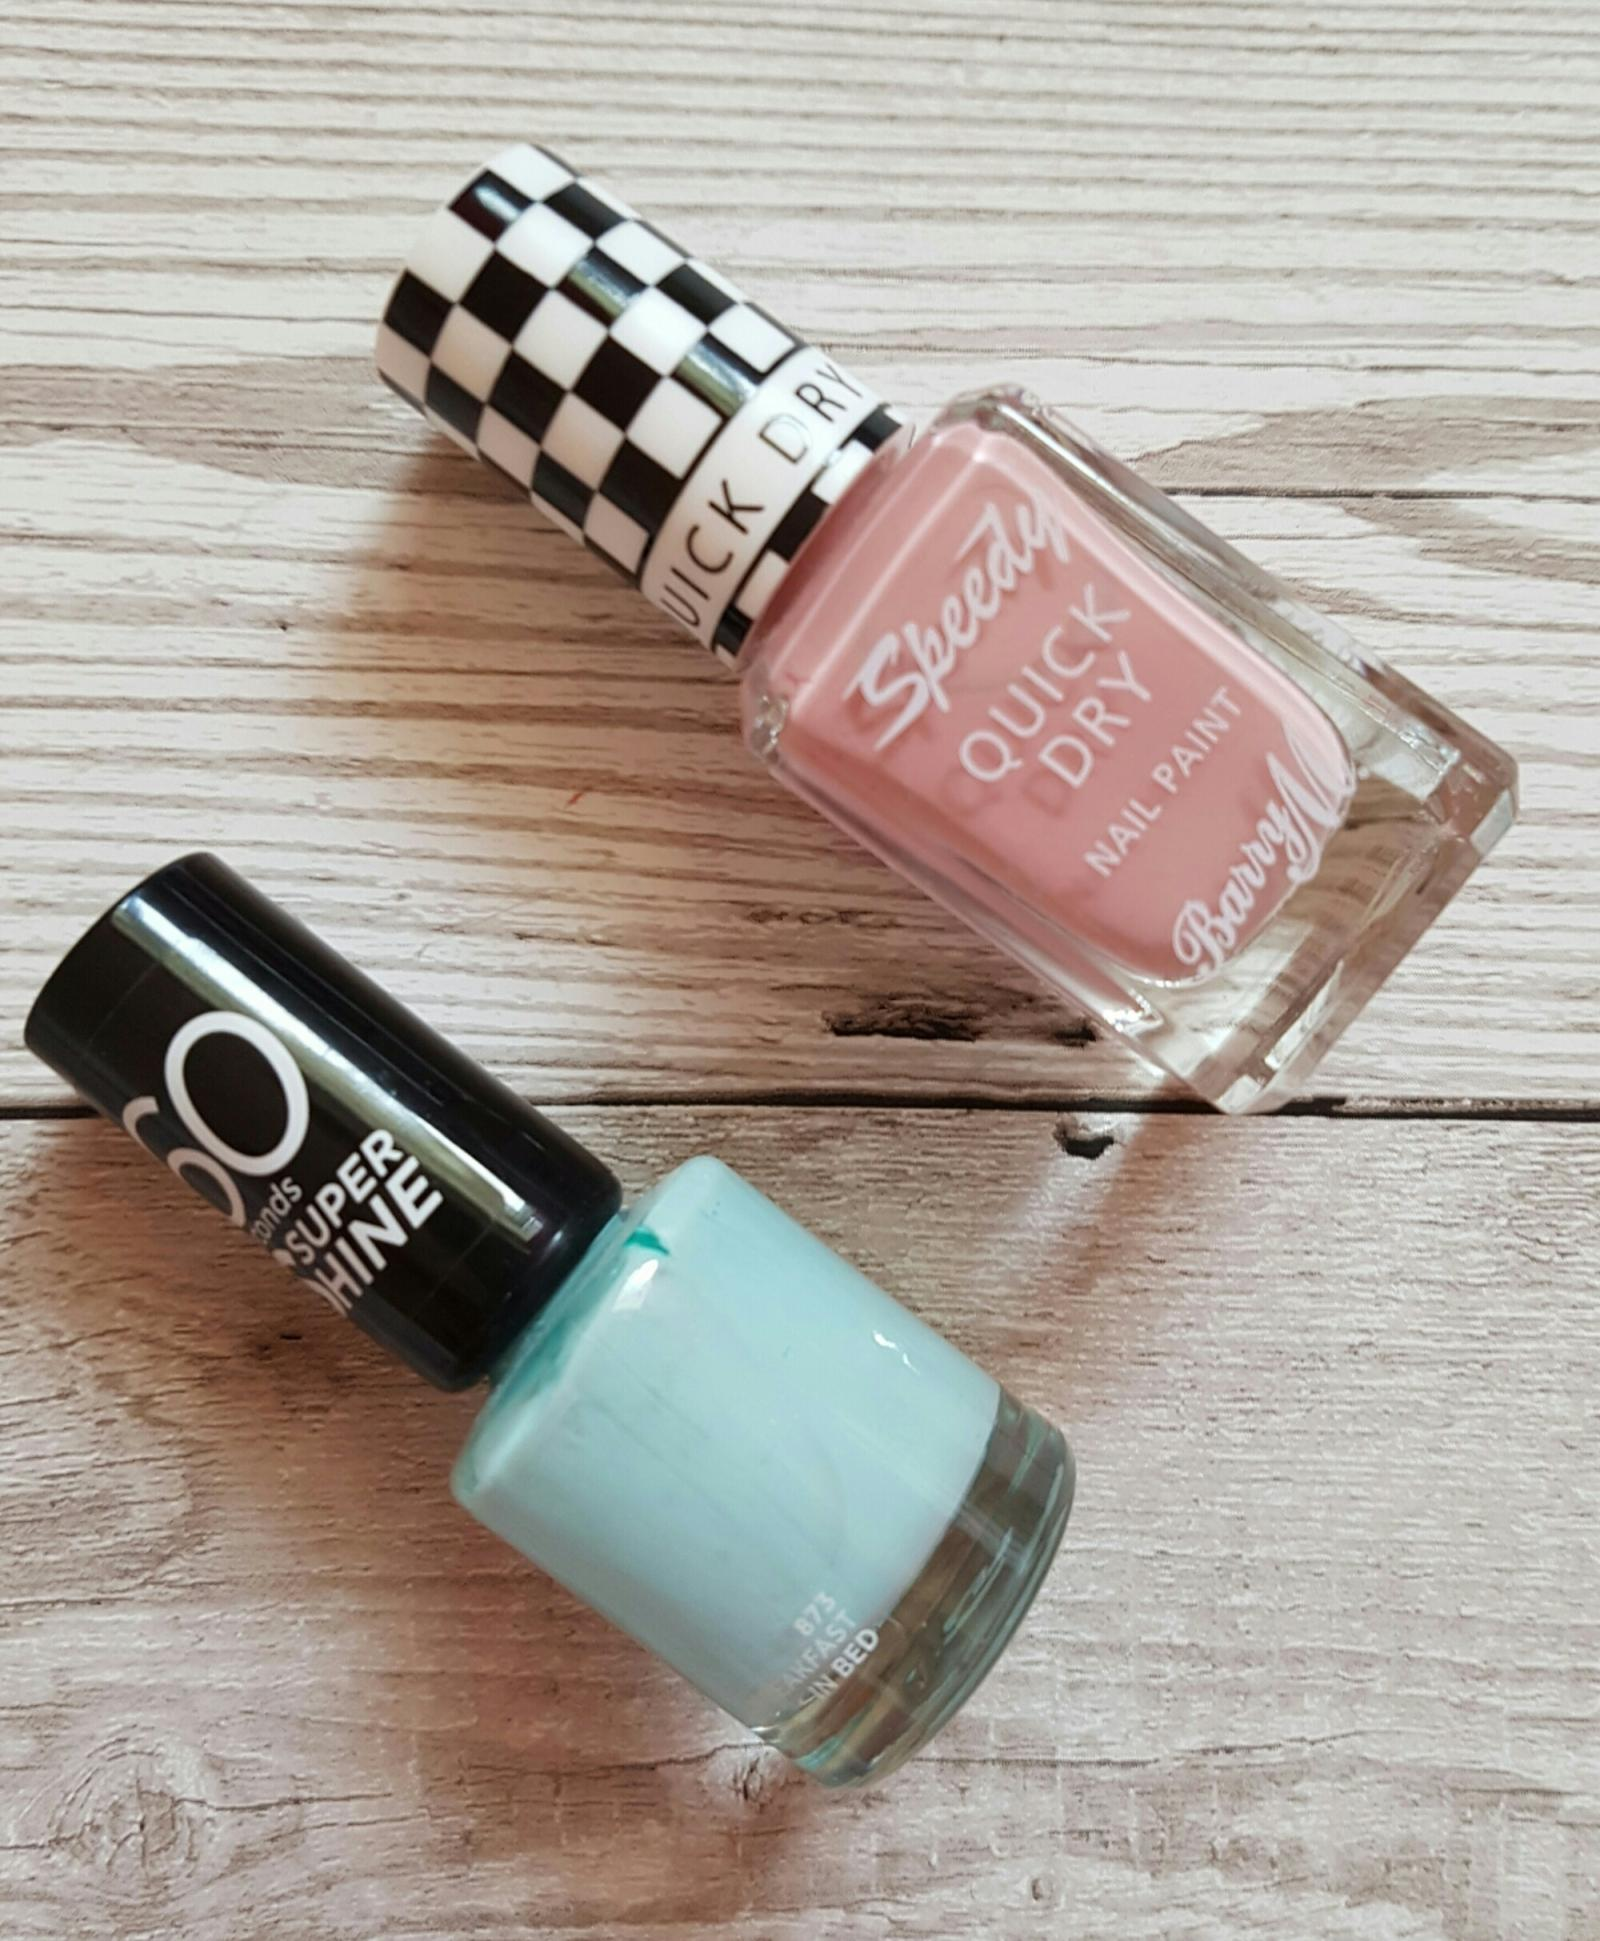 spring beauty edit nail varnish barry m speed dry freestyle rimmel 60 seconds breakfast in bed